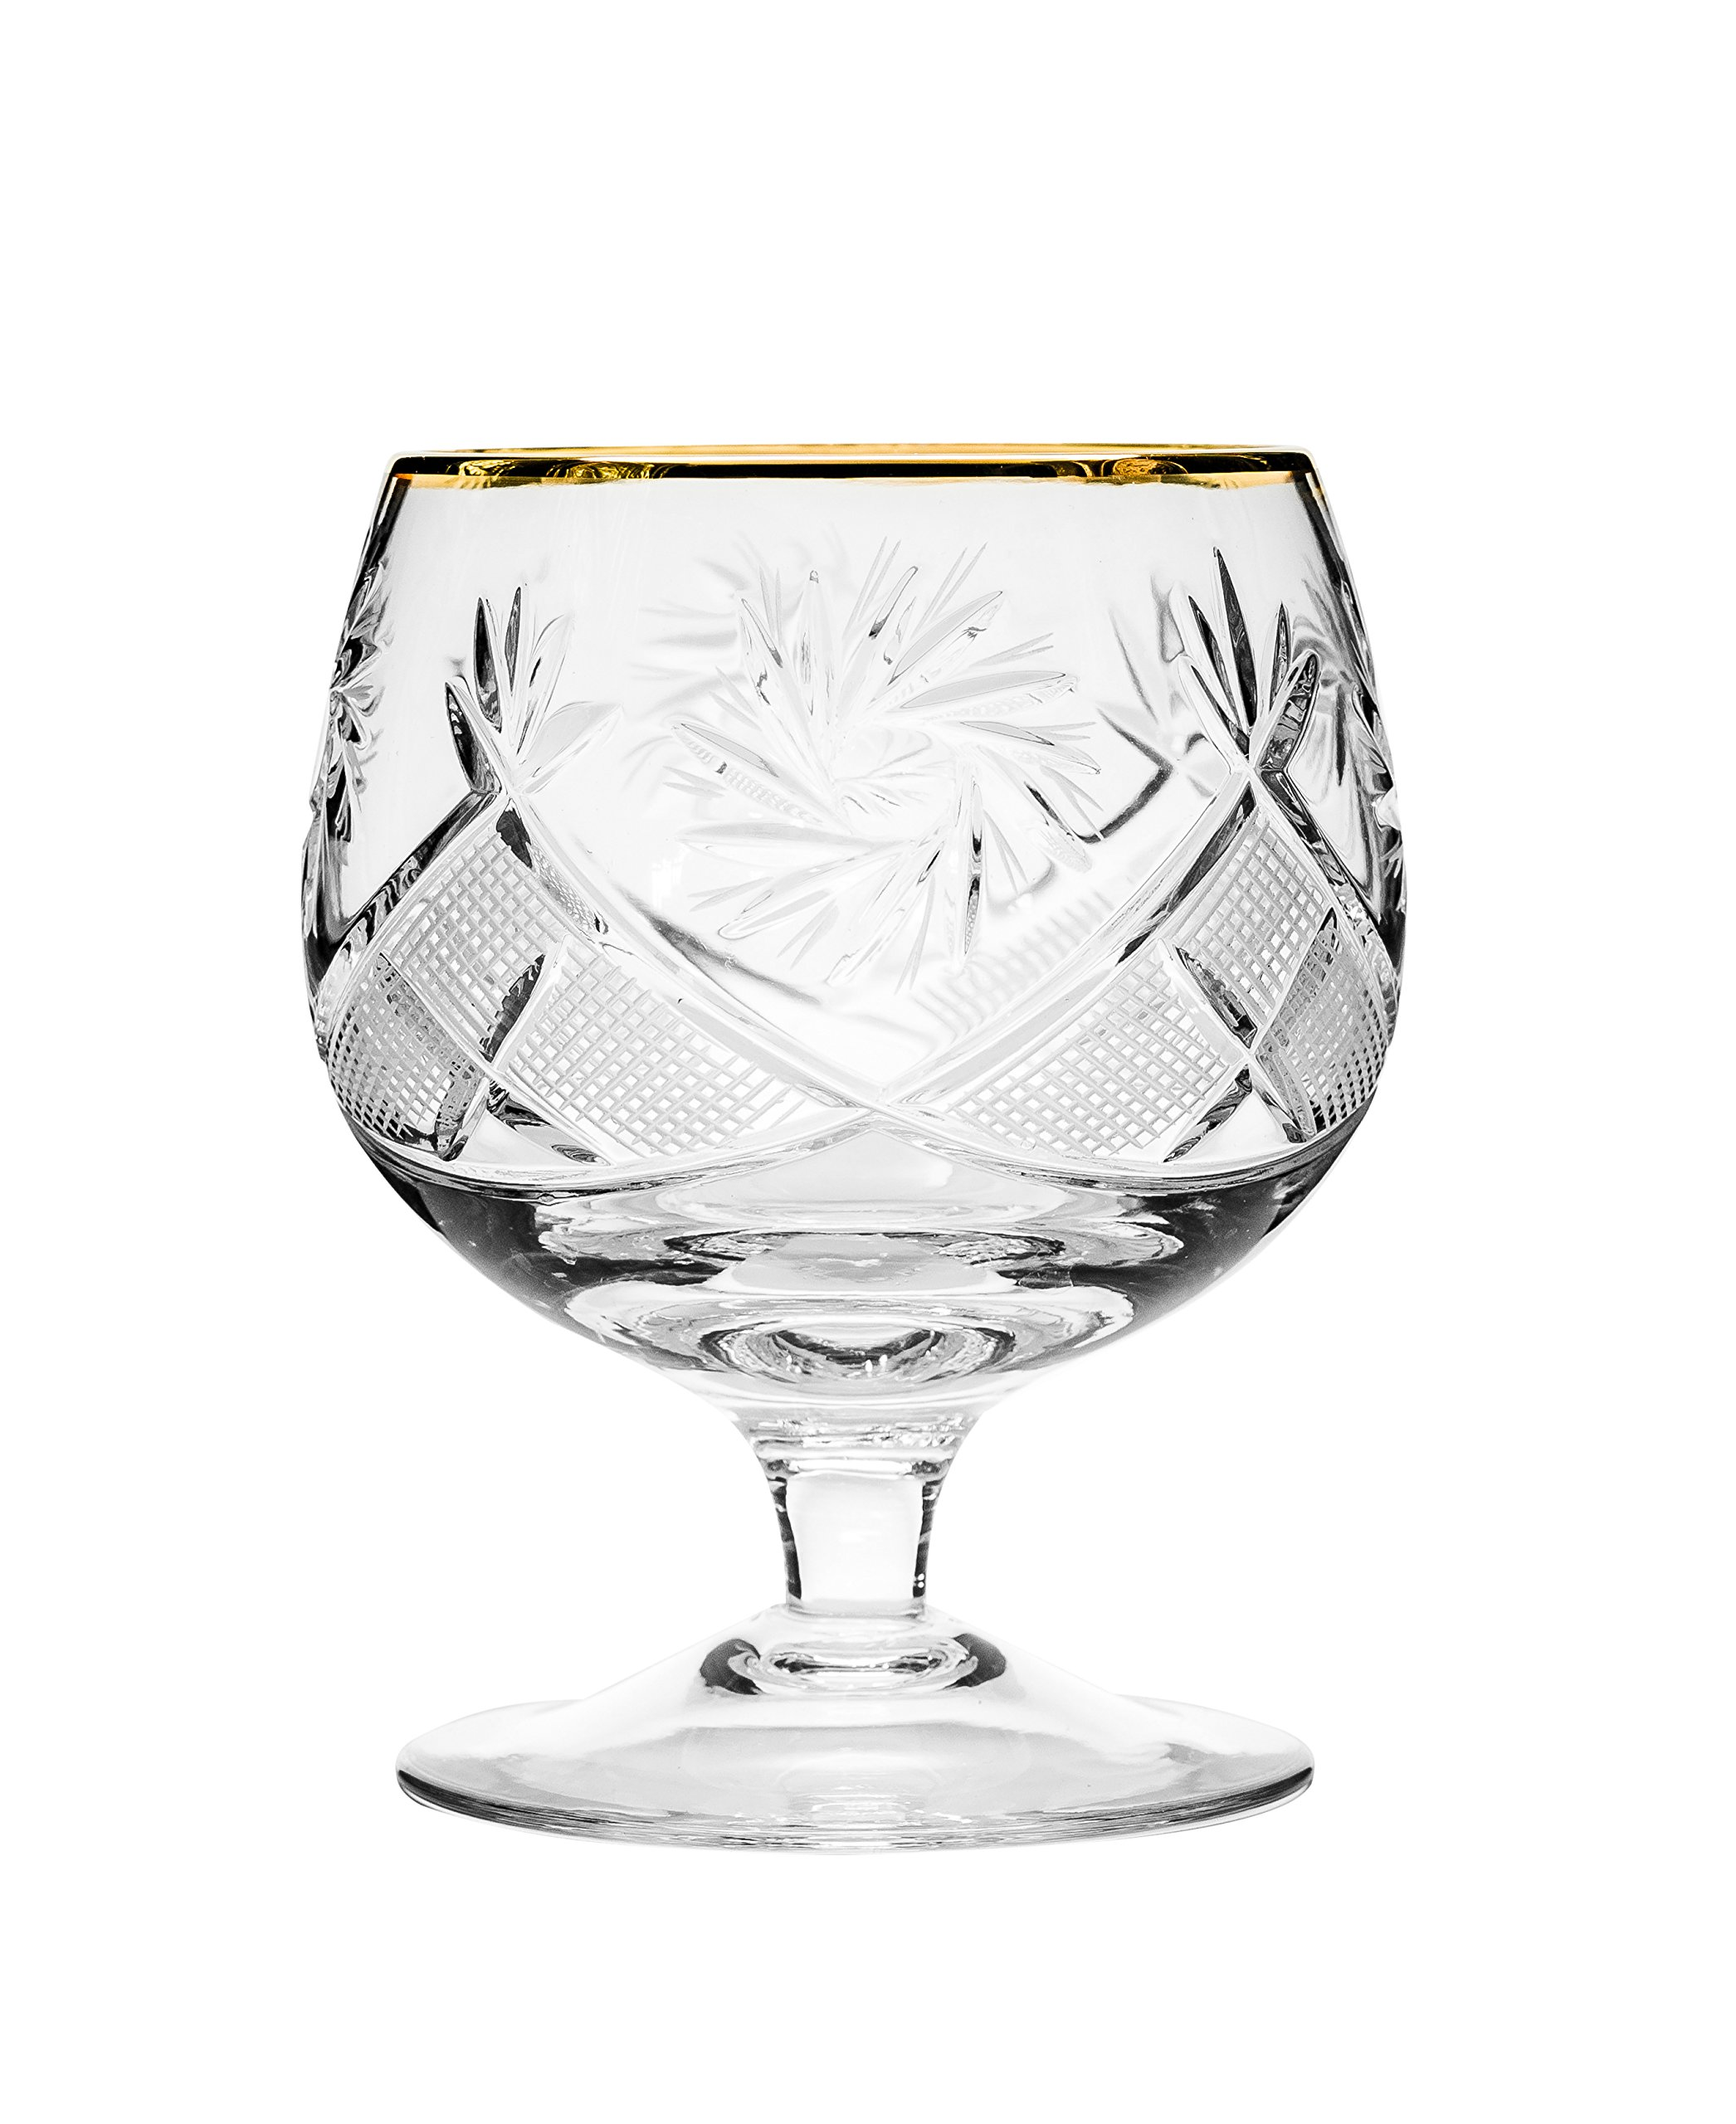 Neman GB5290G, 10 Oz. Crystal Hand-Made Brandy Glasses with Gold Rim, 24K Gold-Plated Scotch Whiskey Cut Crystal Snifters on a Stem, Wedding Drinkware, Set of 6